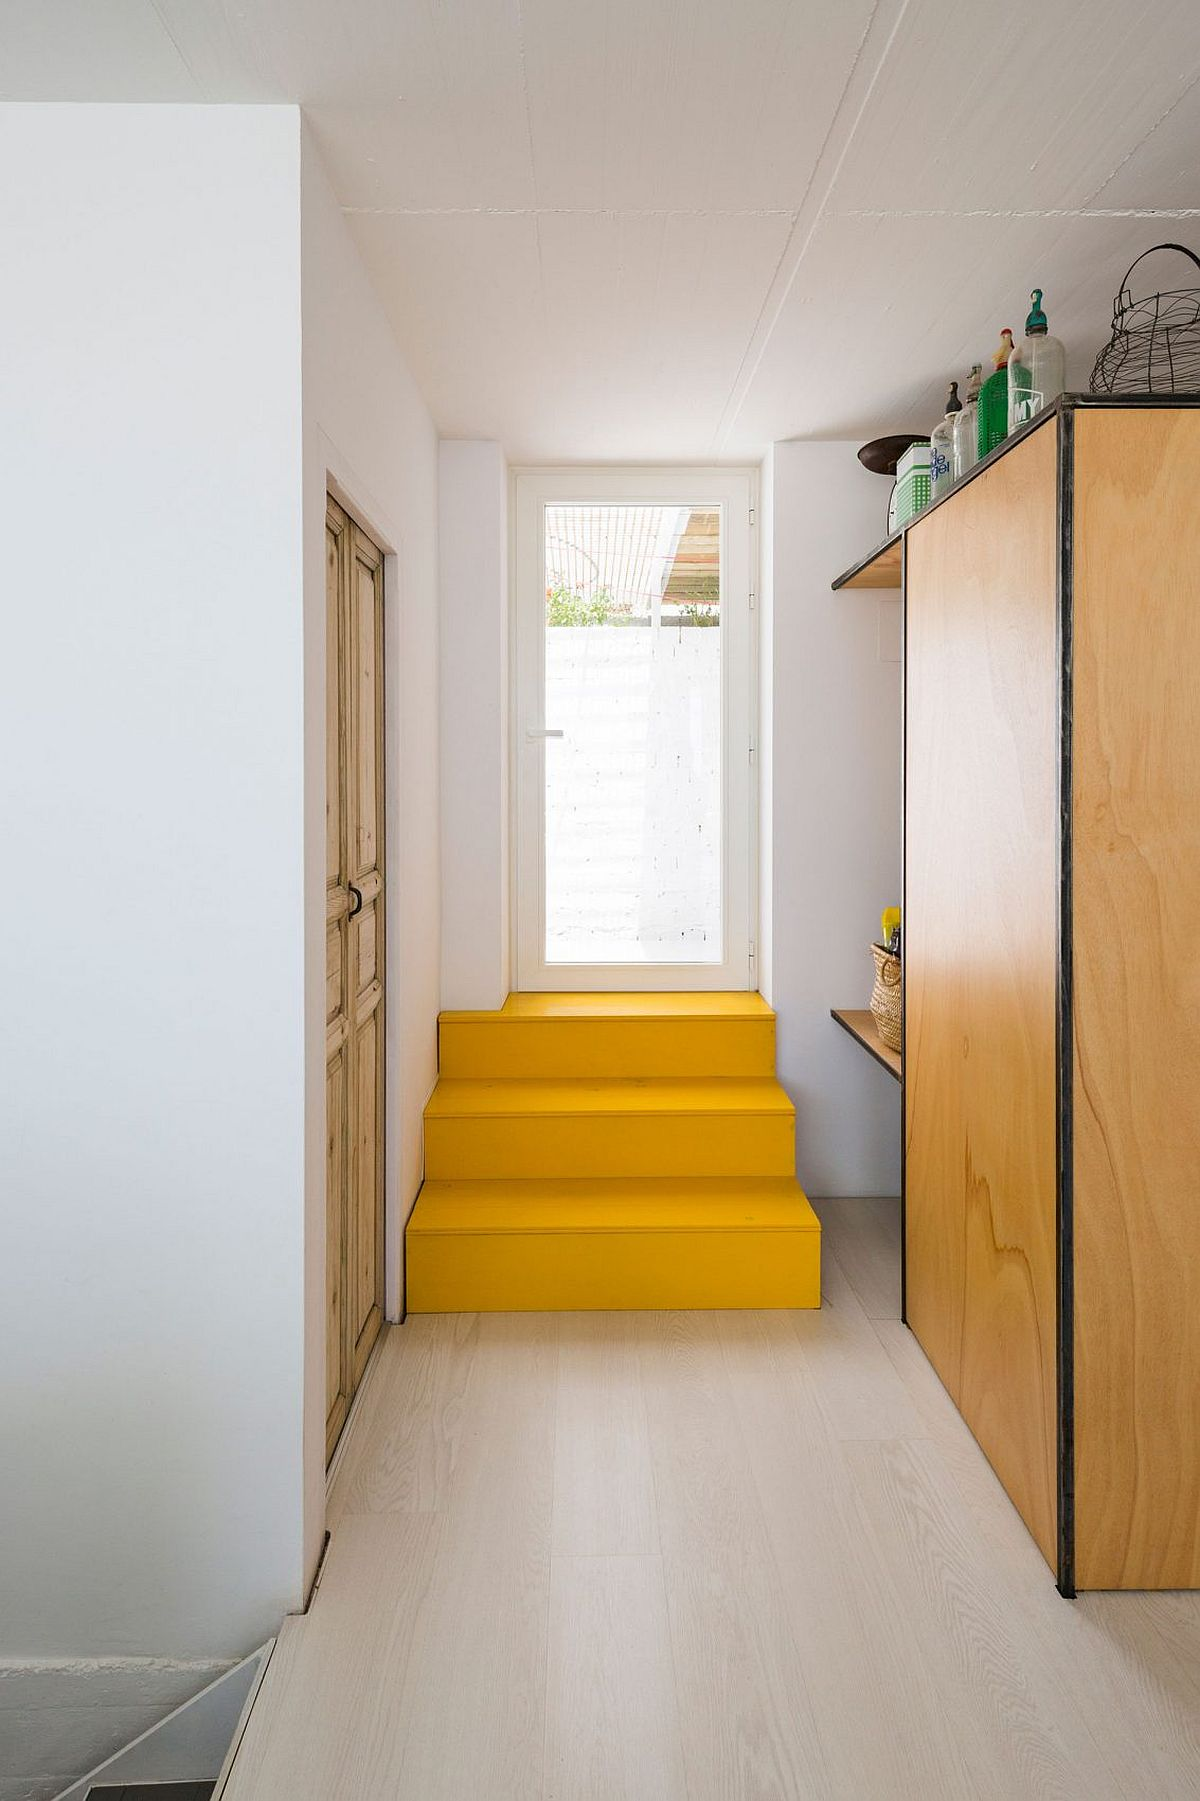 Colorful staircase in yellow inside the Spanish house